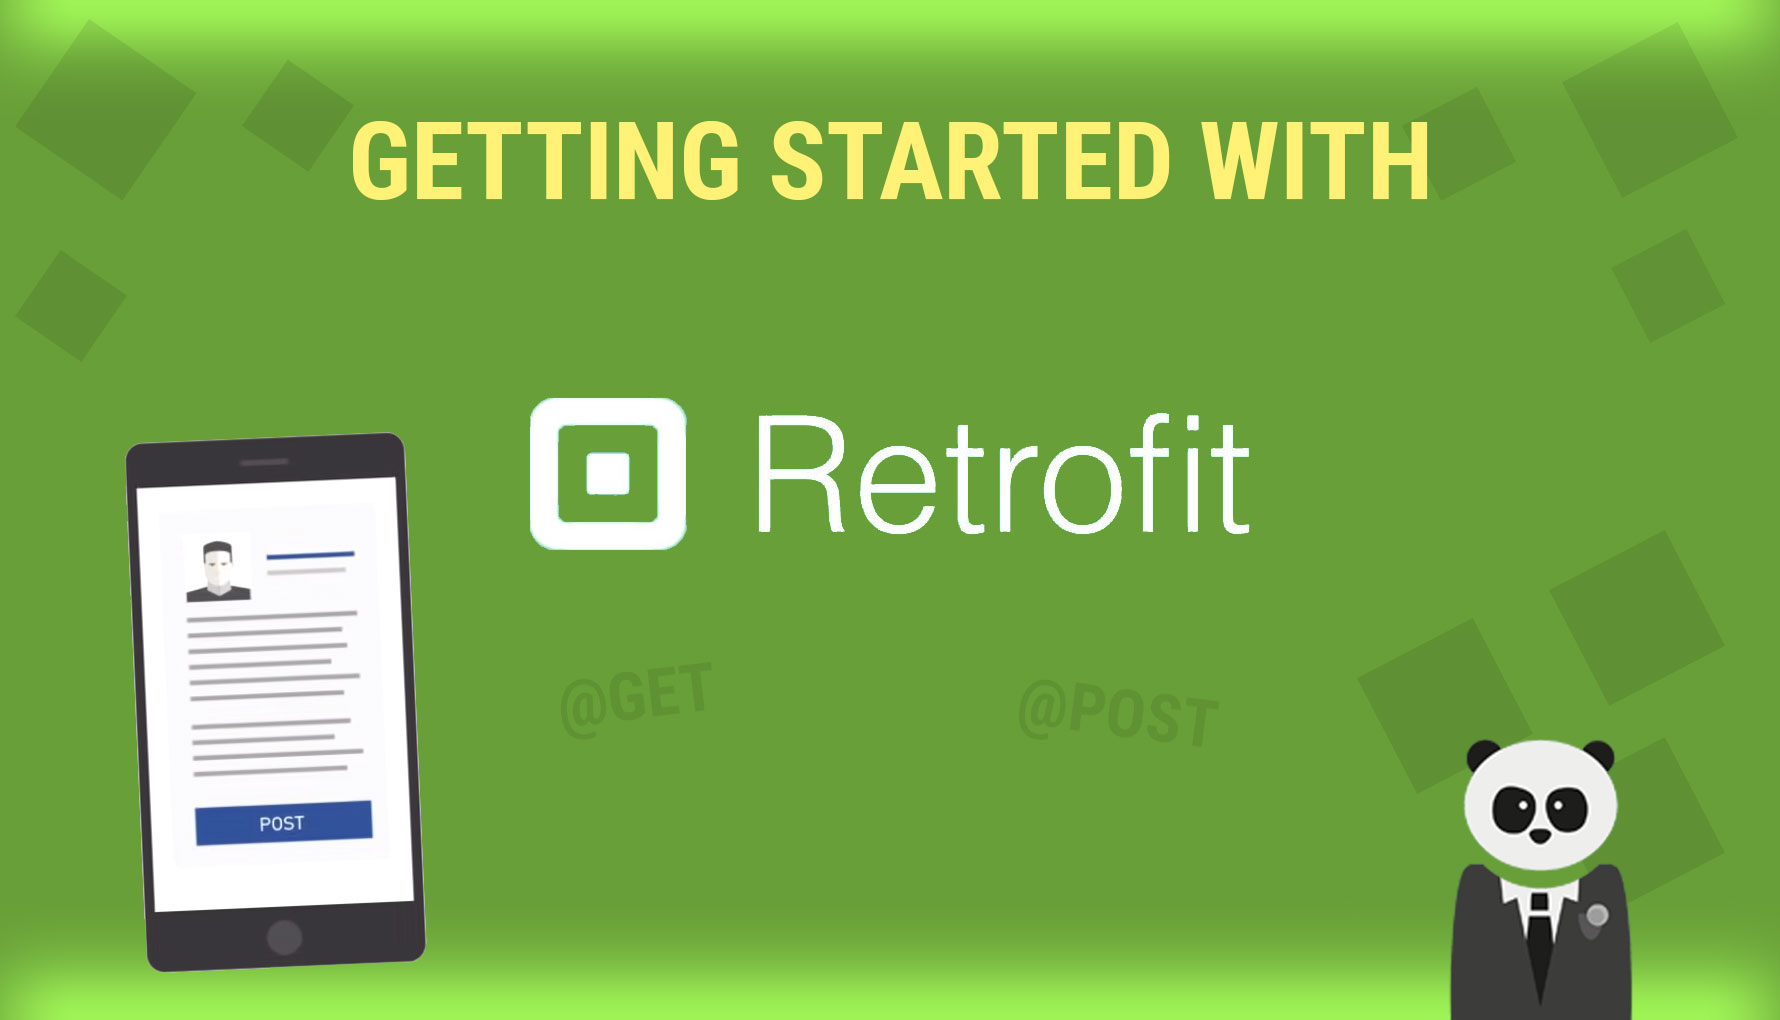 Ridiculously Simple Guide to Getting Started with Retrofit